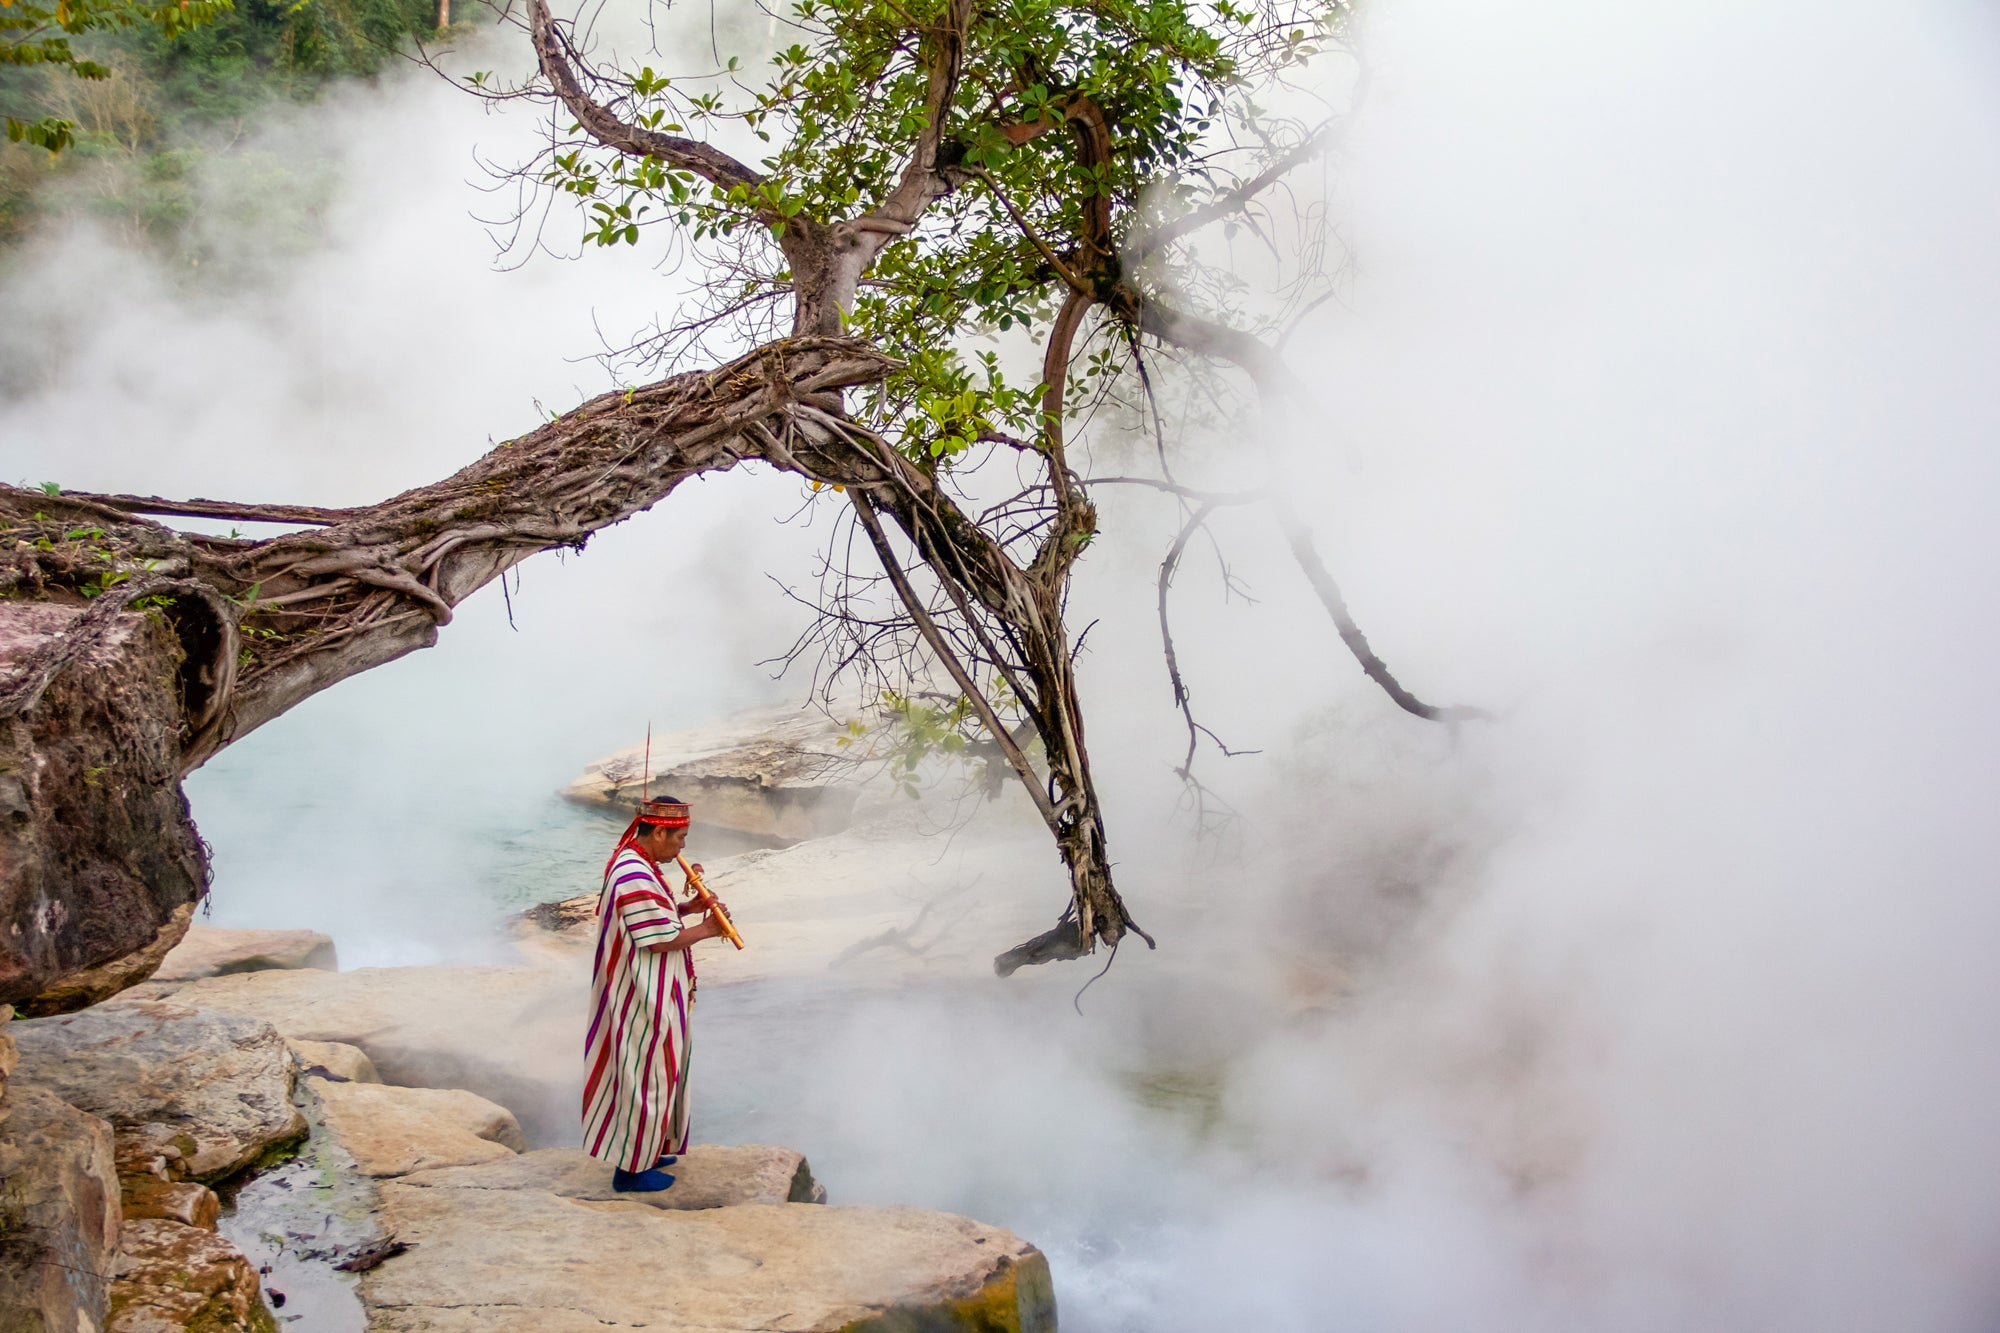 Scientists Discover a Boiling River of Amazonian Legend